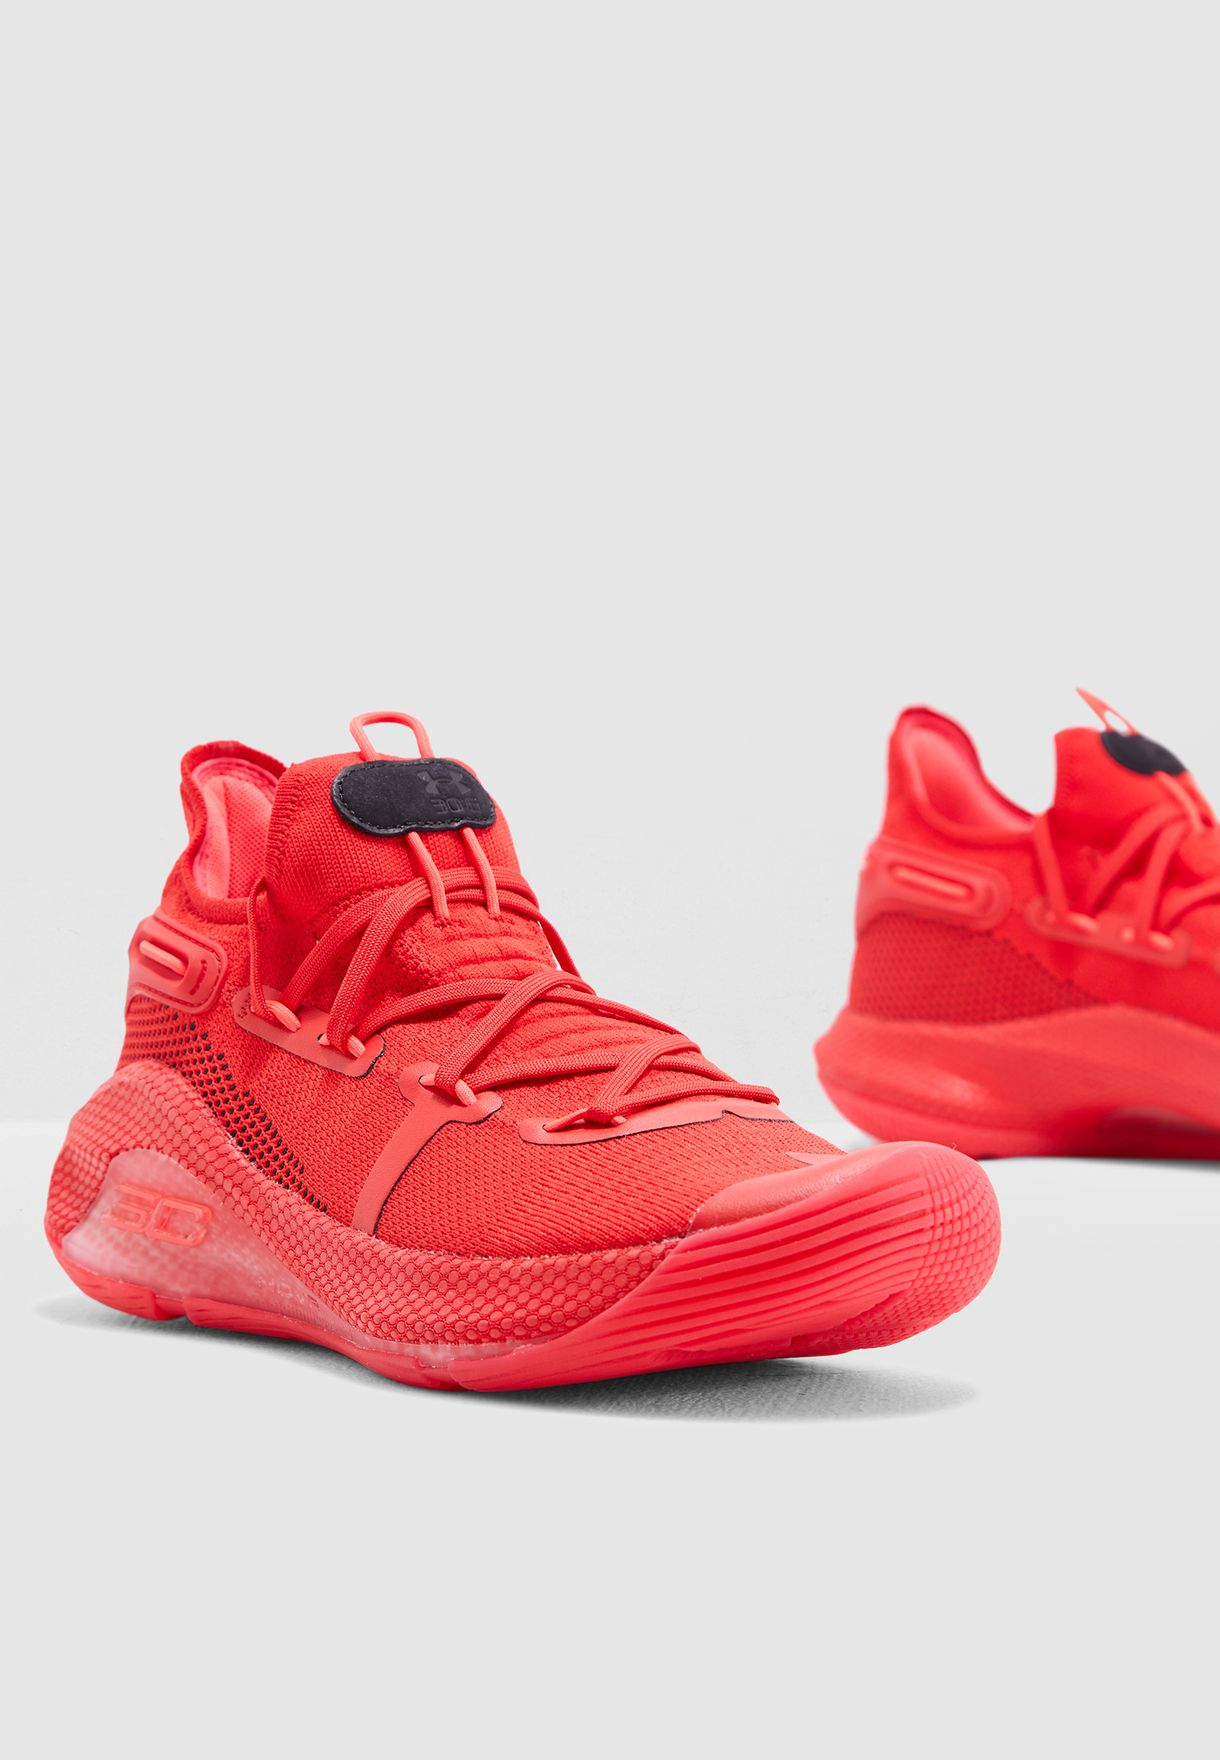 Buy Under Armour red Curry 6 for Men in